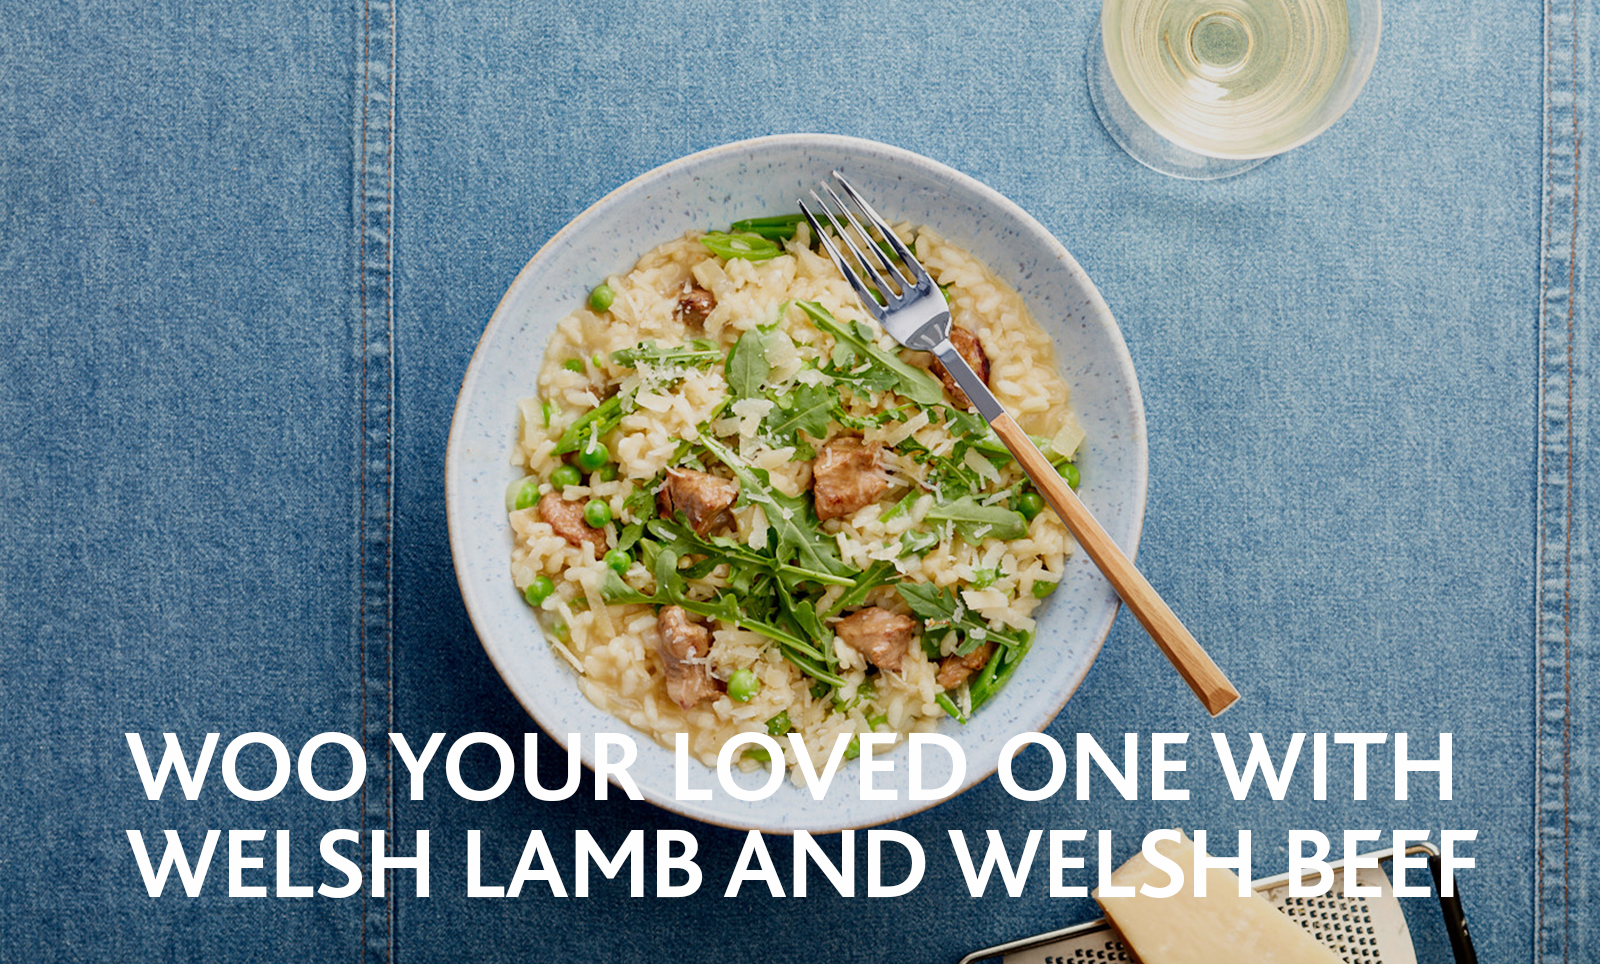 Woo your loved one with Welsh Lamb and Welsh Beef